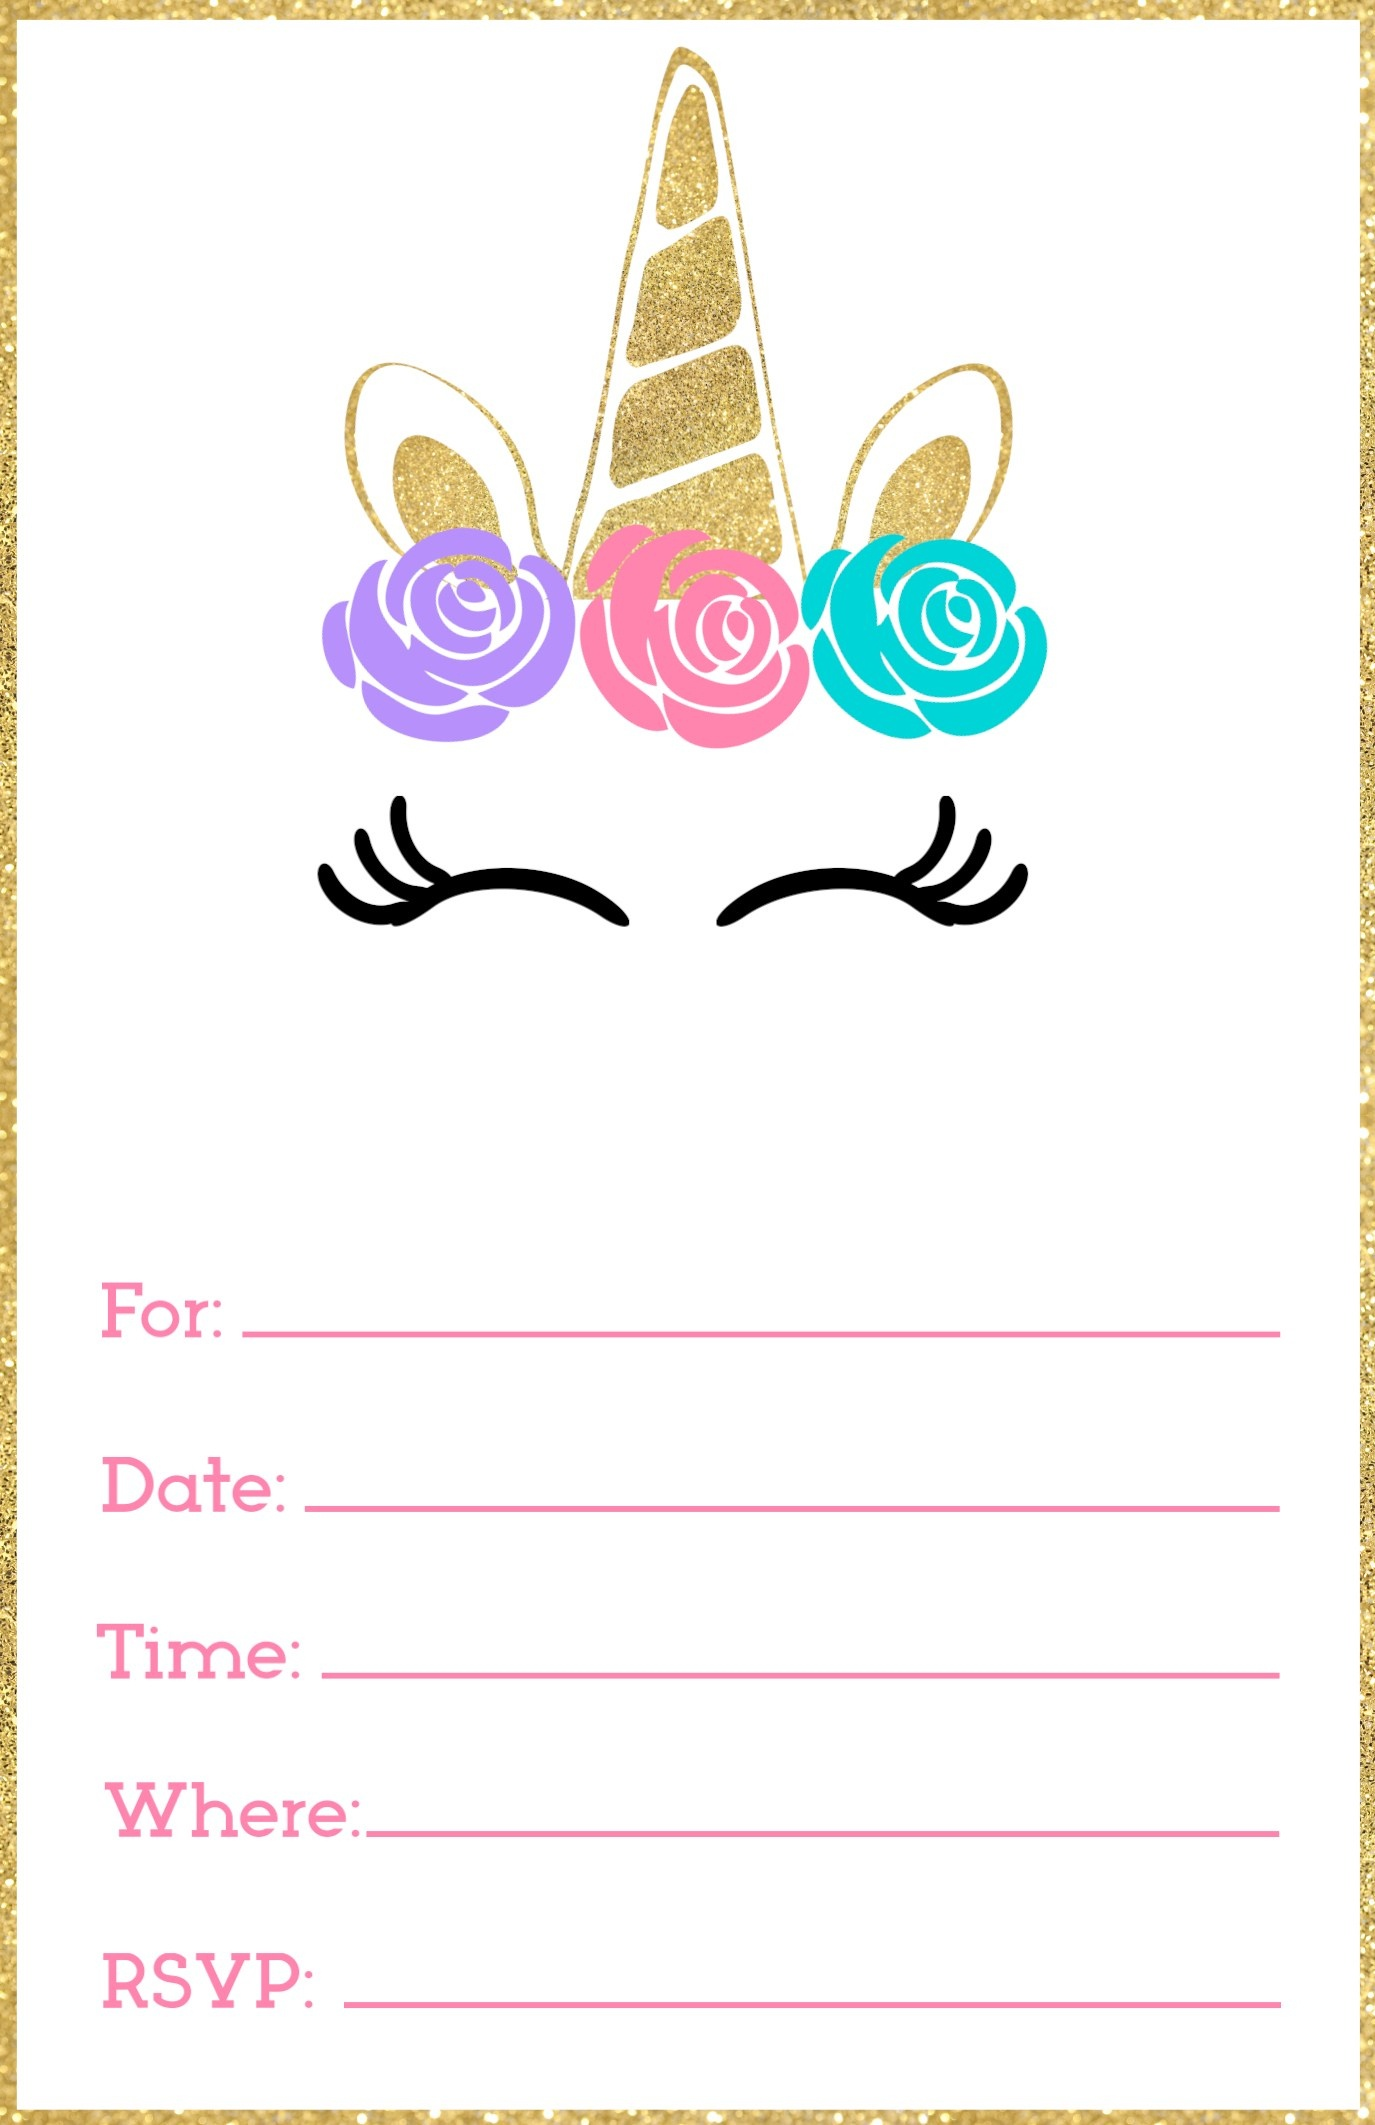 Free Printable Unicorn Invitations Template - Paper Trail Design - Free Printable Birthday Invitations